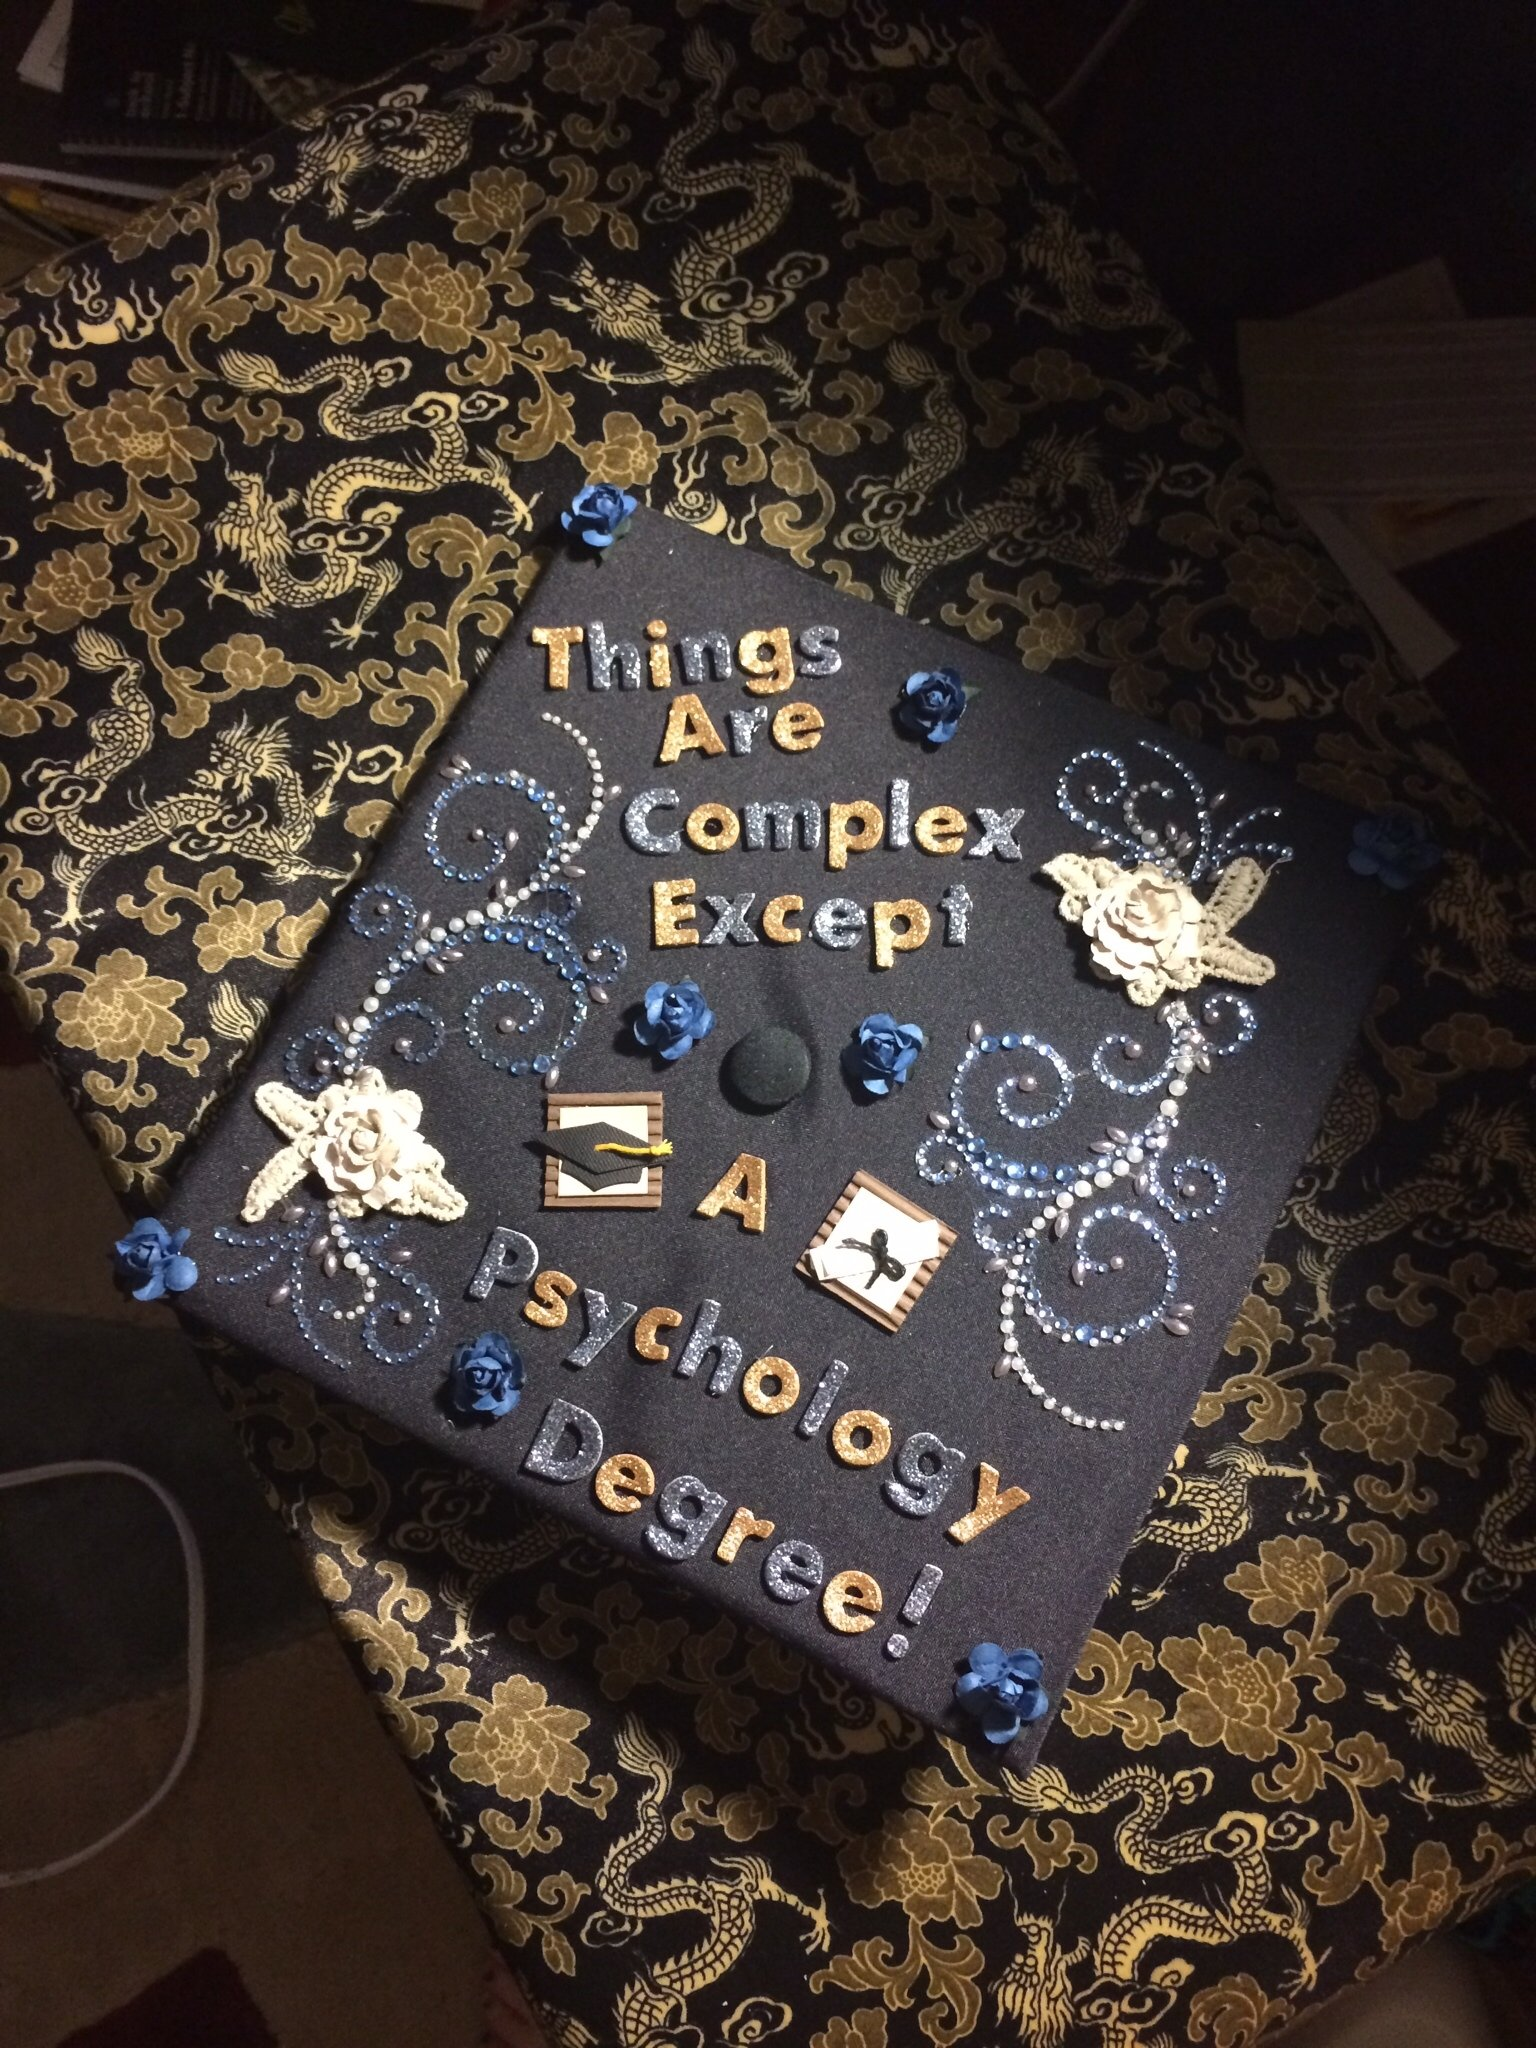 10 Most Recommended College Graduation Cap Decoration Ideas things are complex except a psychology degree psychology cap 2020